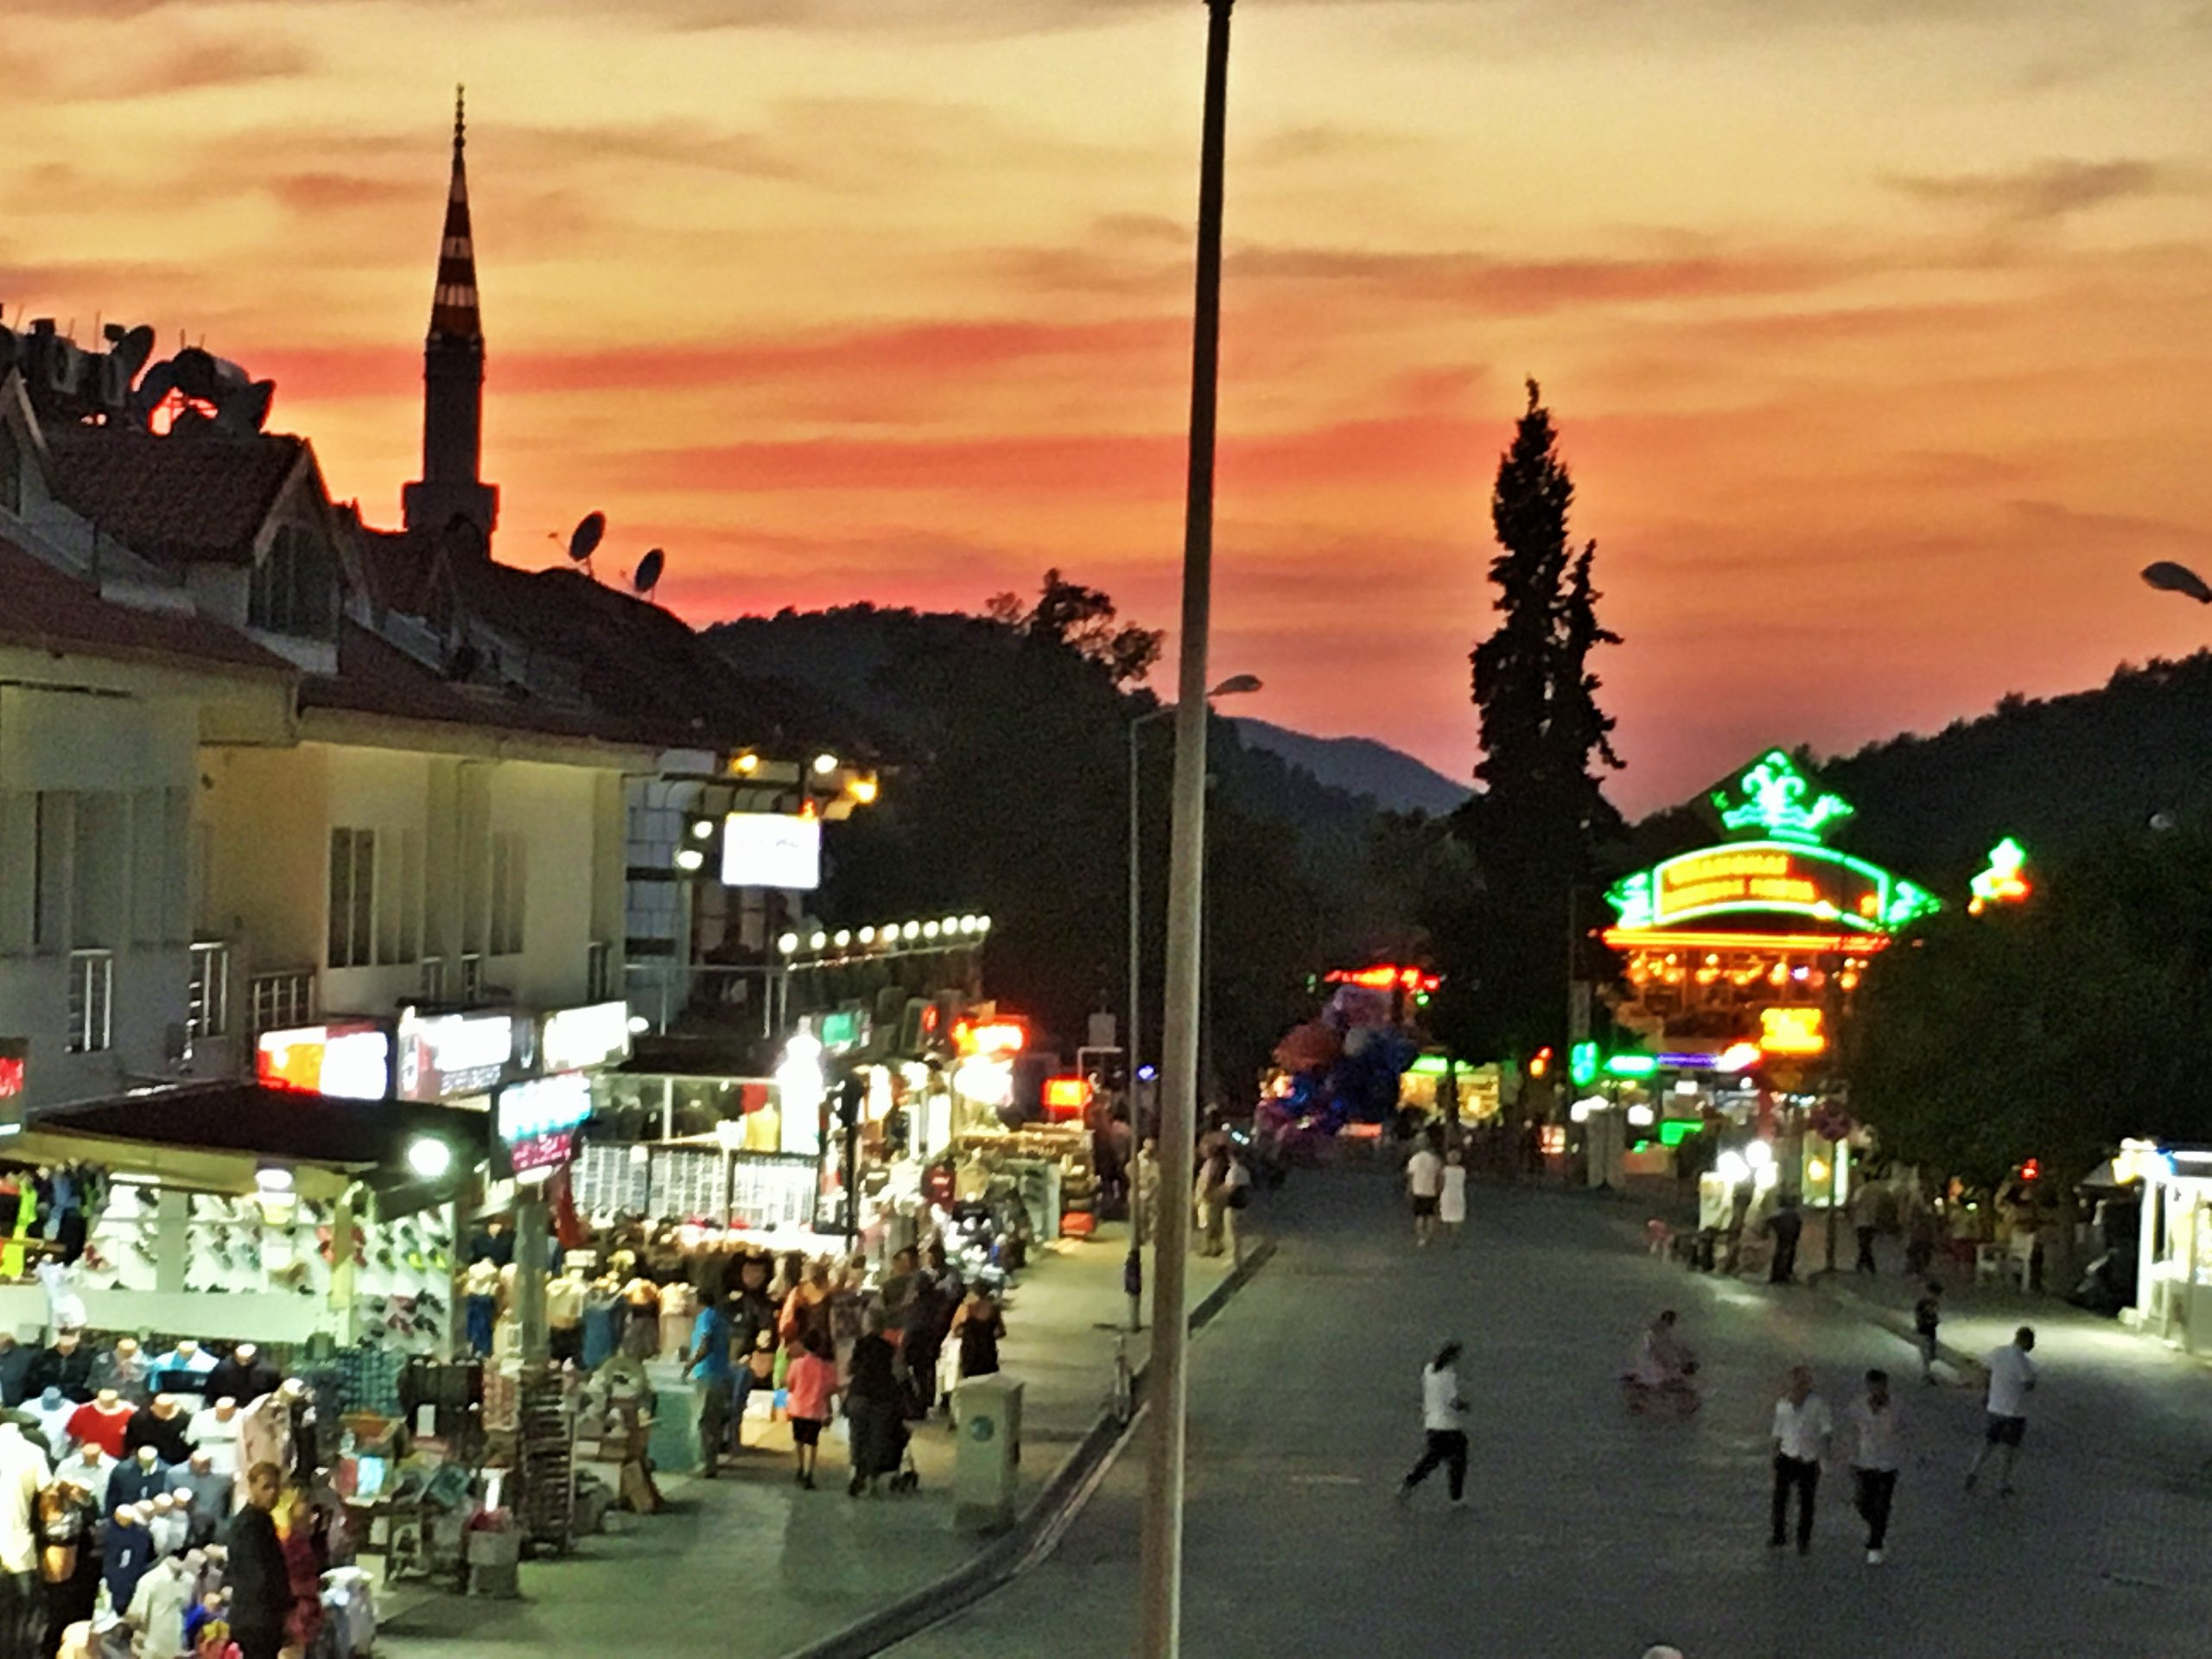 An image to show the summer resort of Hisaronu